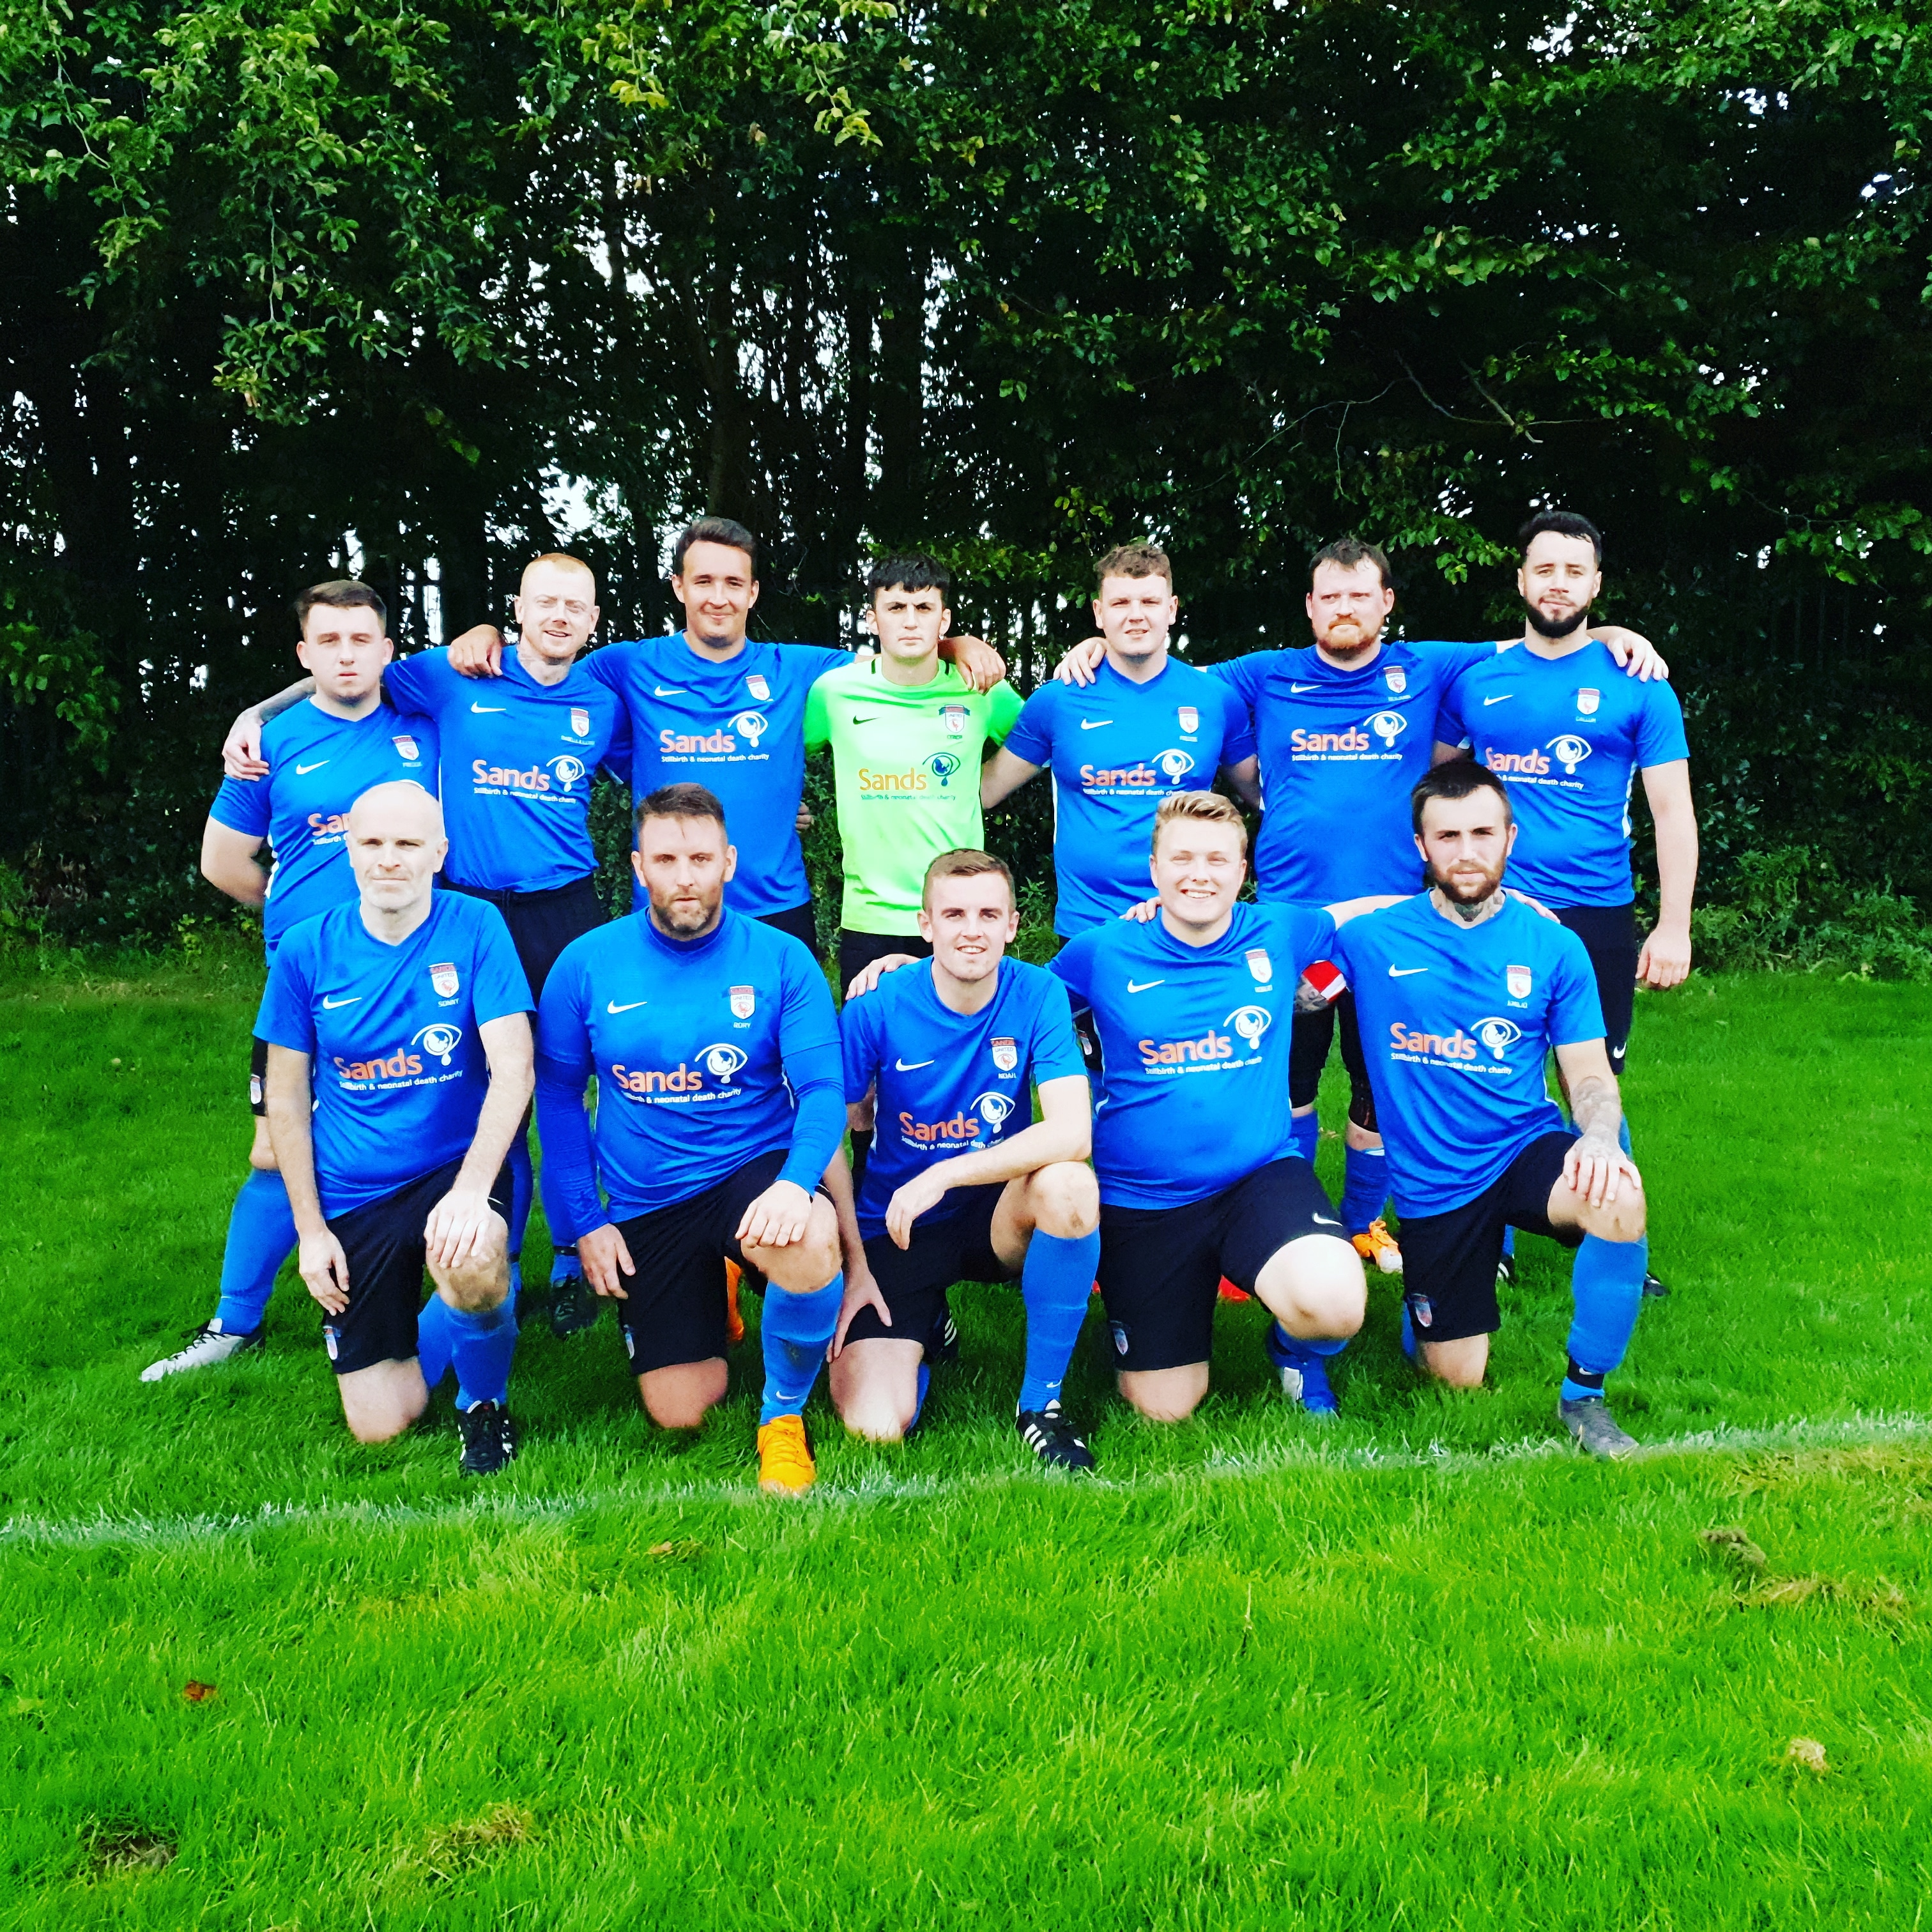 Sands United FC Stockport early lineup